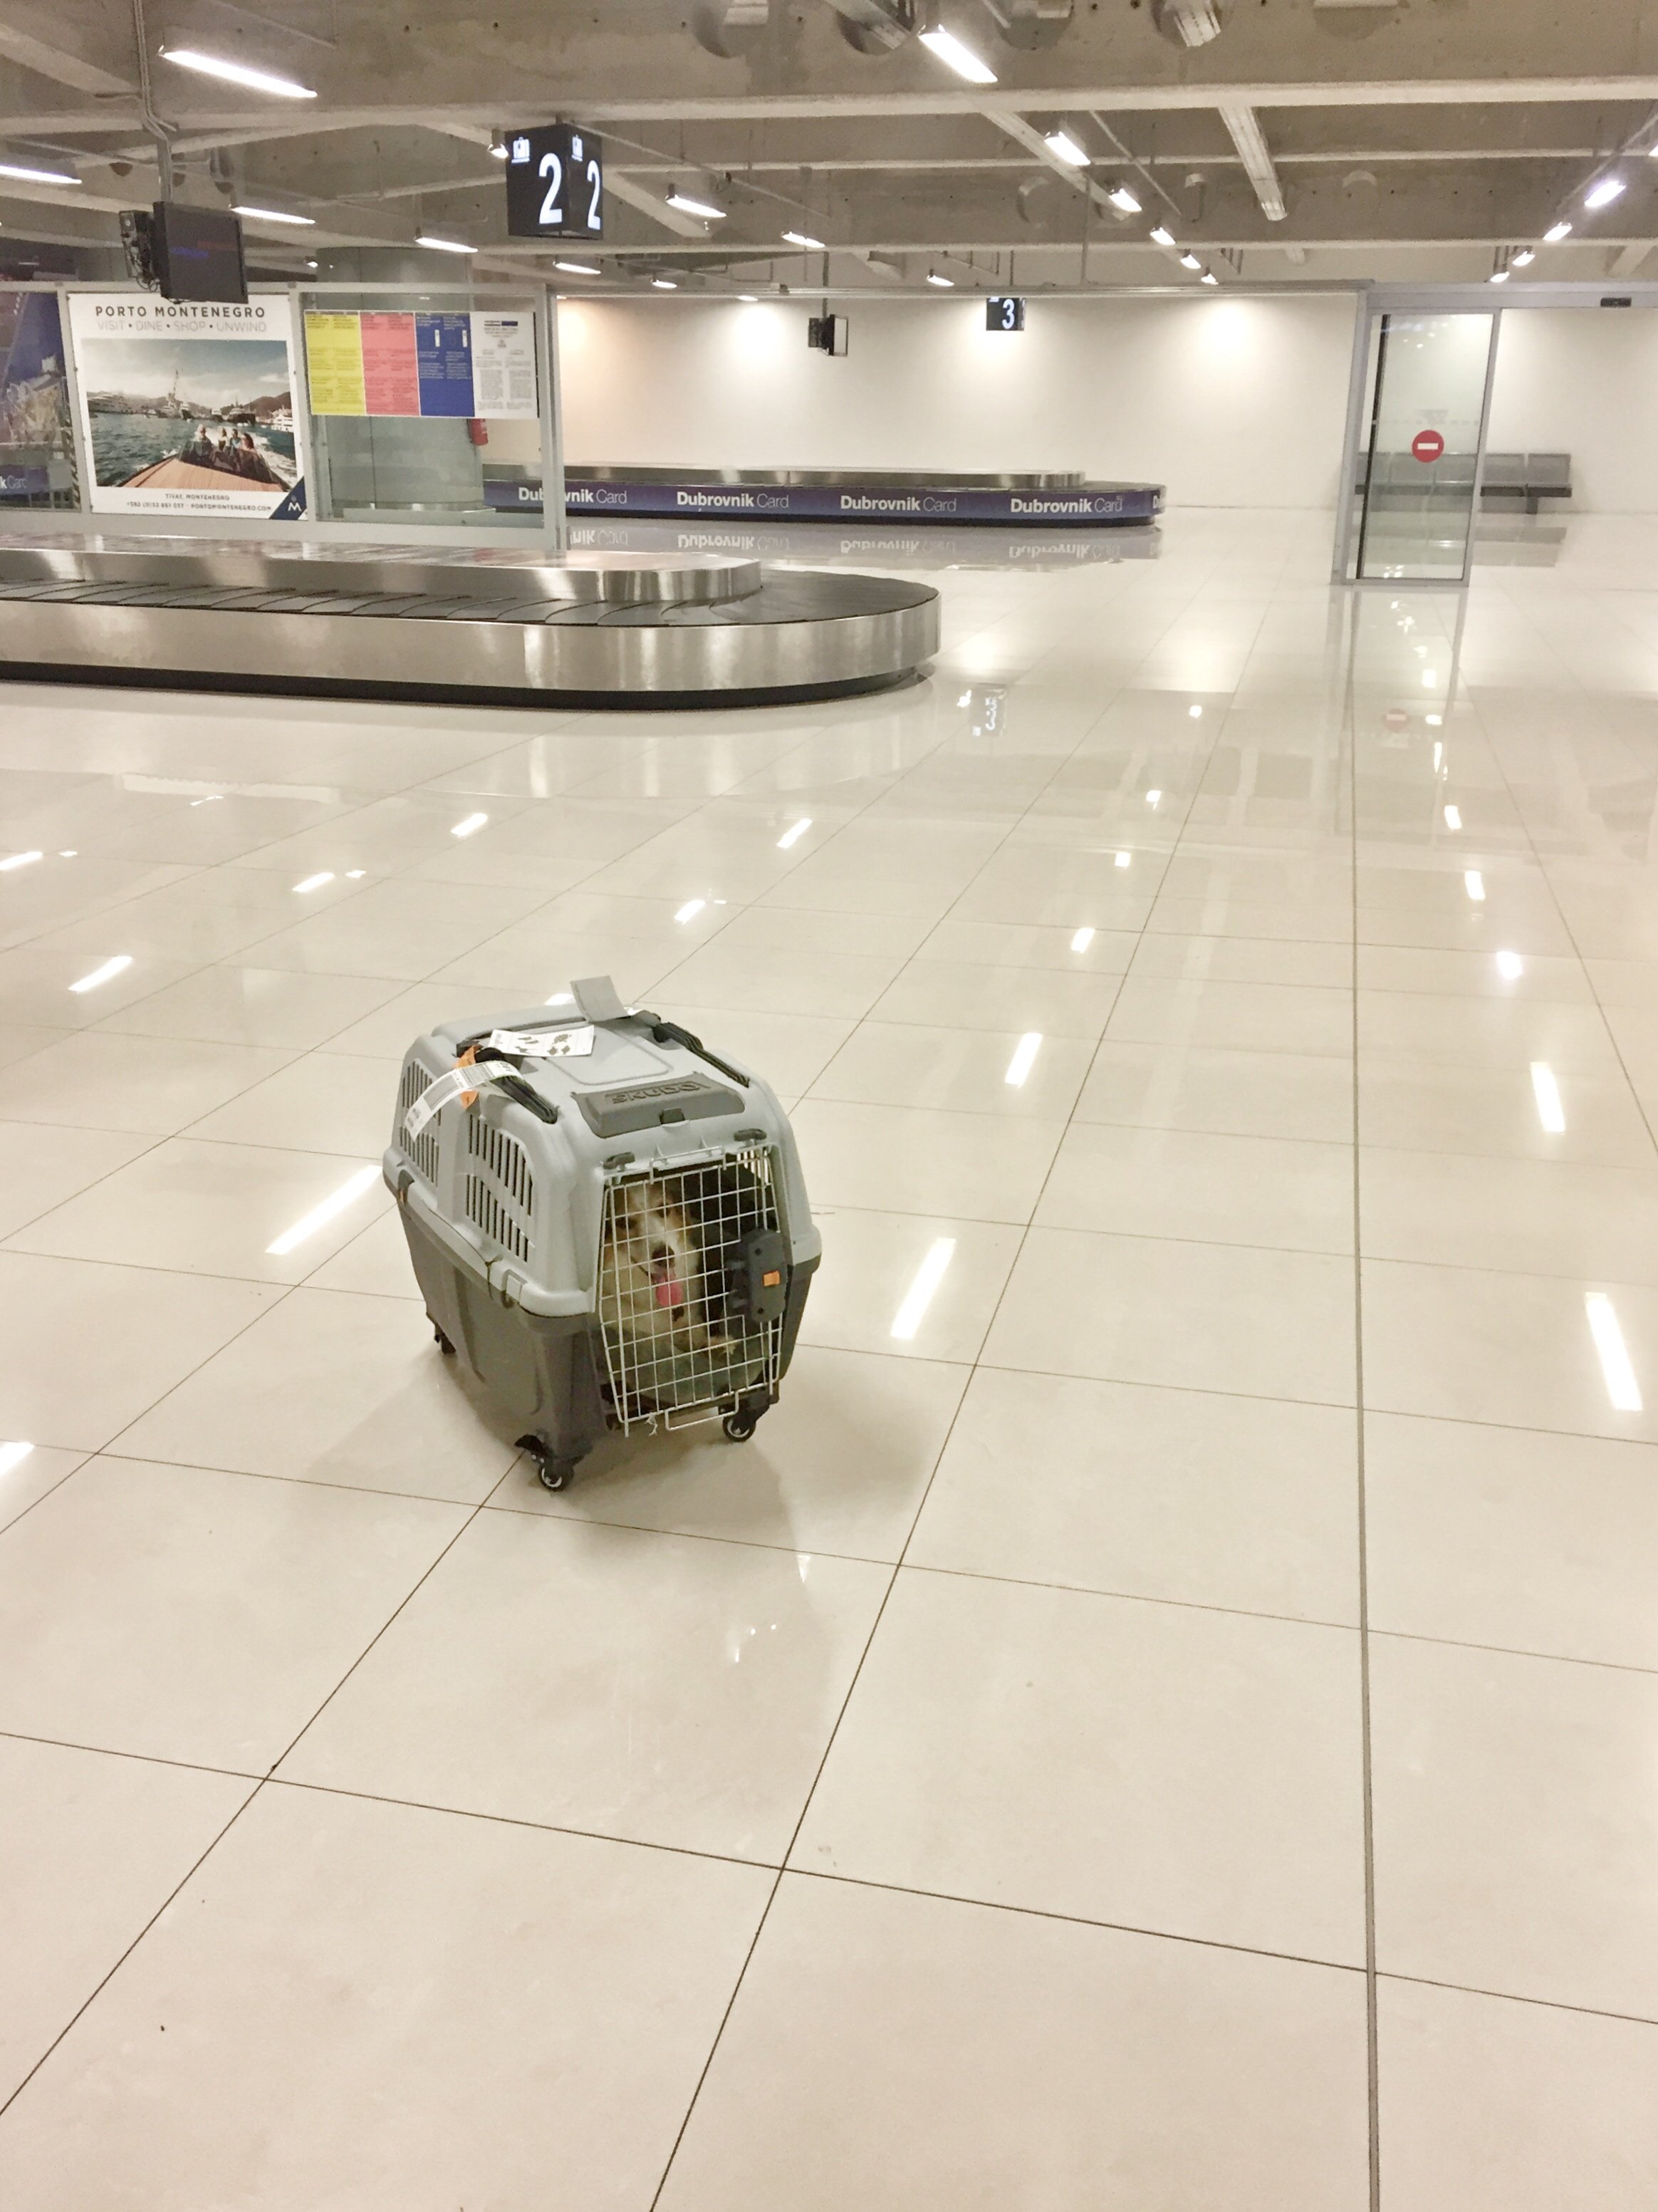 dog carriers need not apply to ride trains and public transit in Europe